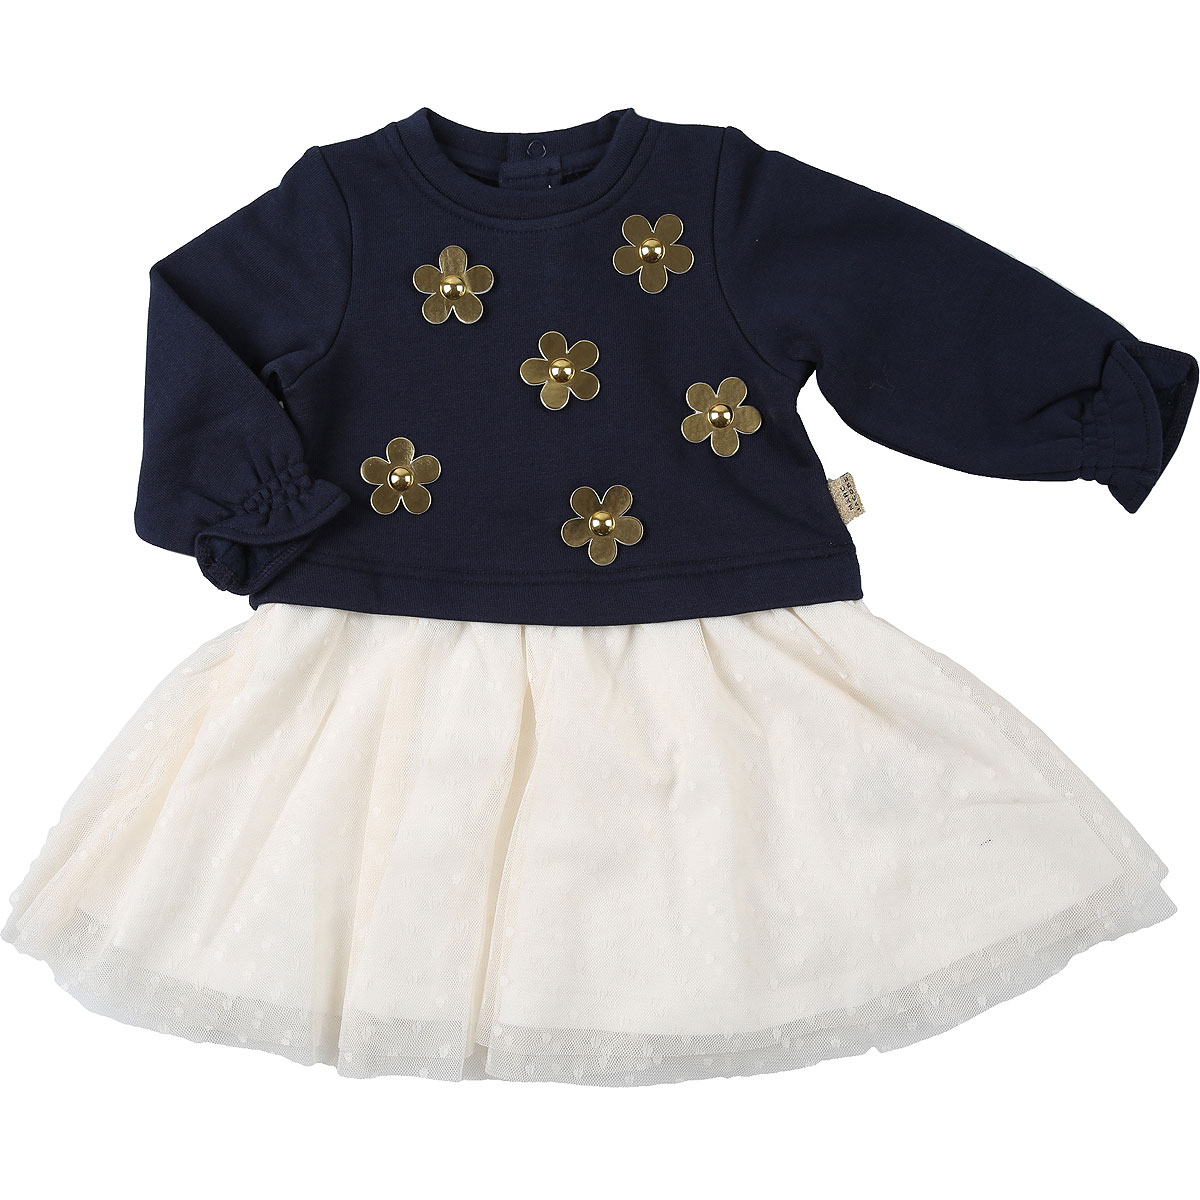 Marc Jacobs Baby Dress for Girls On Sale, Blue, Cotton, 2019, 12M 2Y